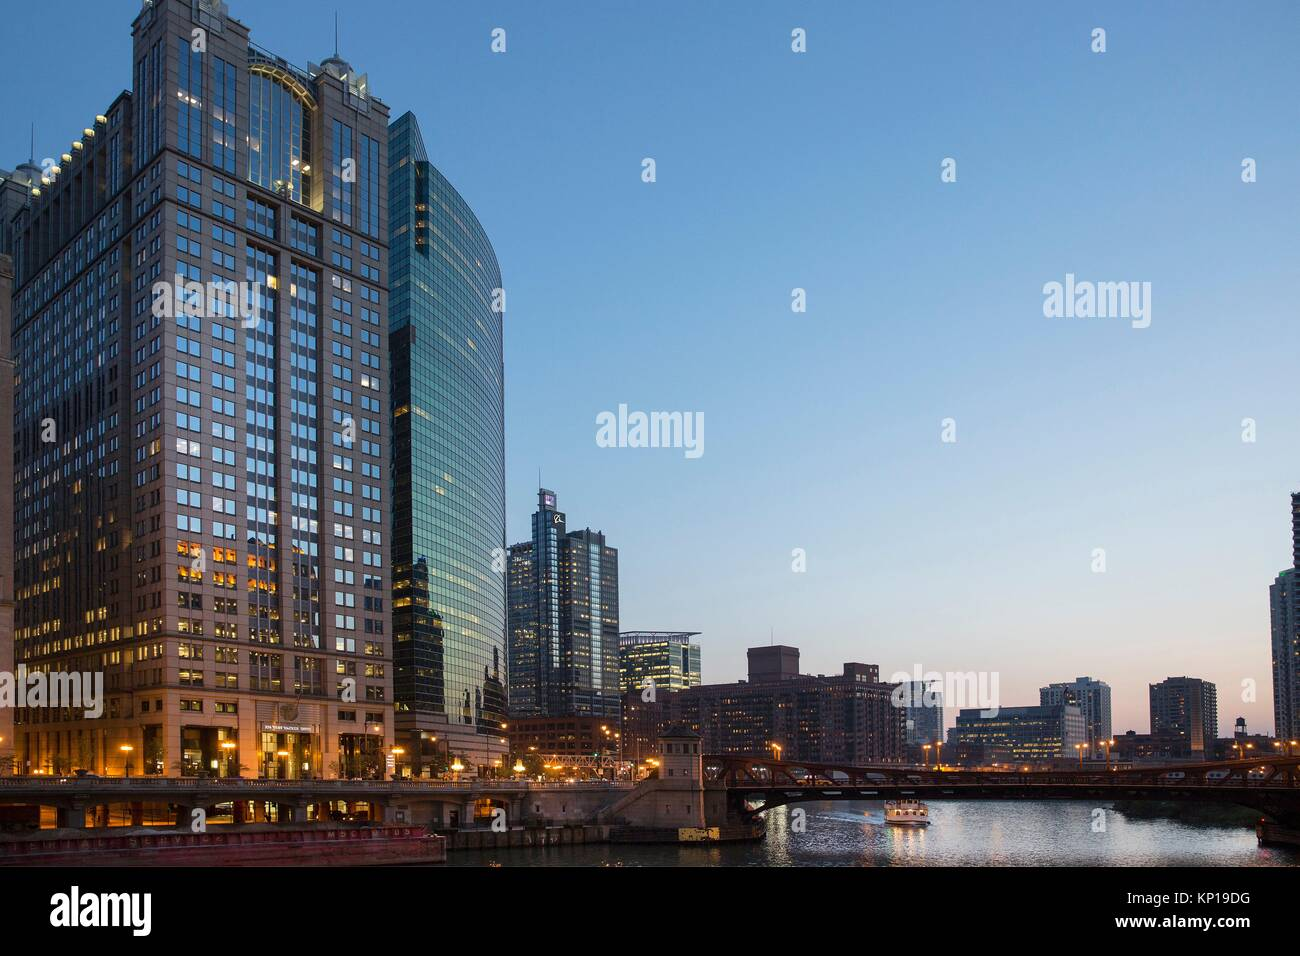 225 and 333 West Wacker drive buildings and Chicago river at night. - Stock Image